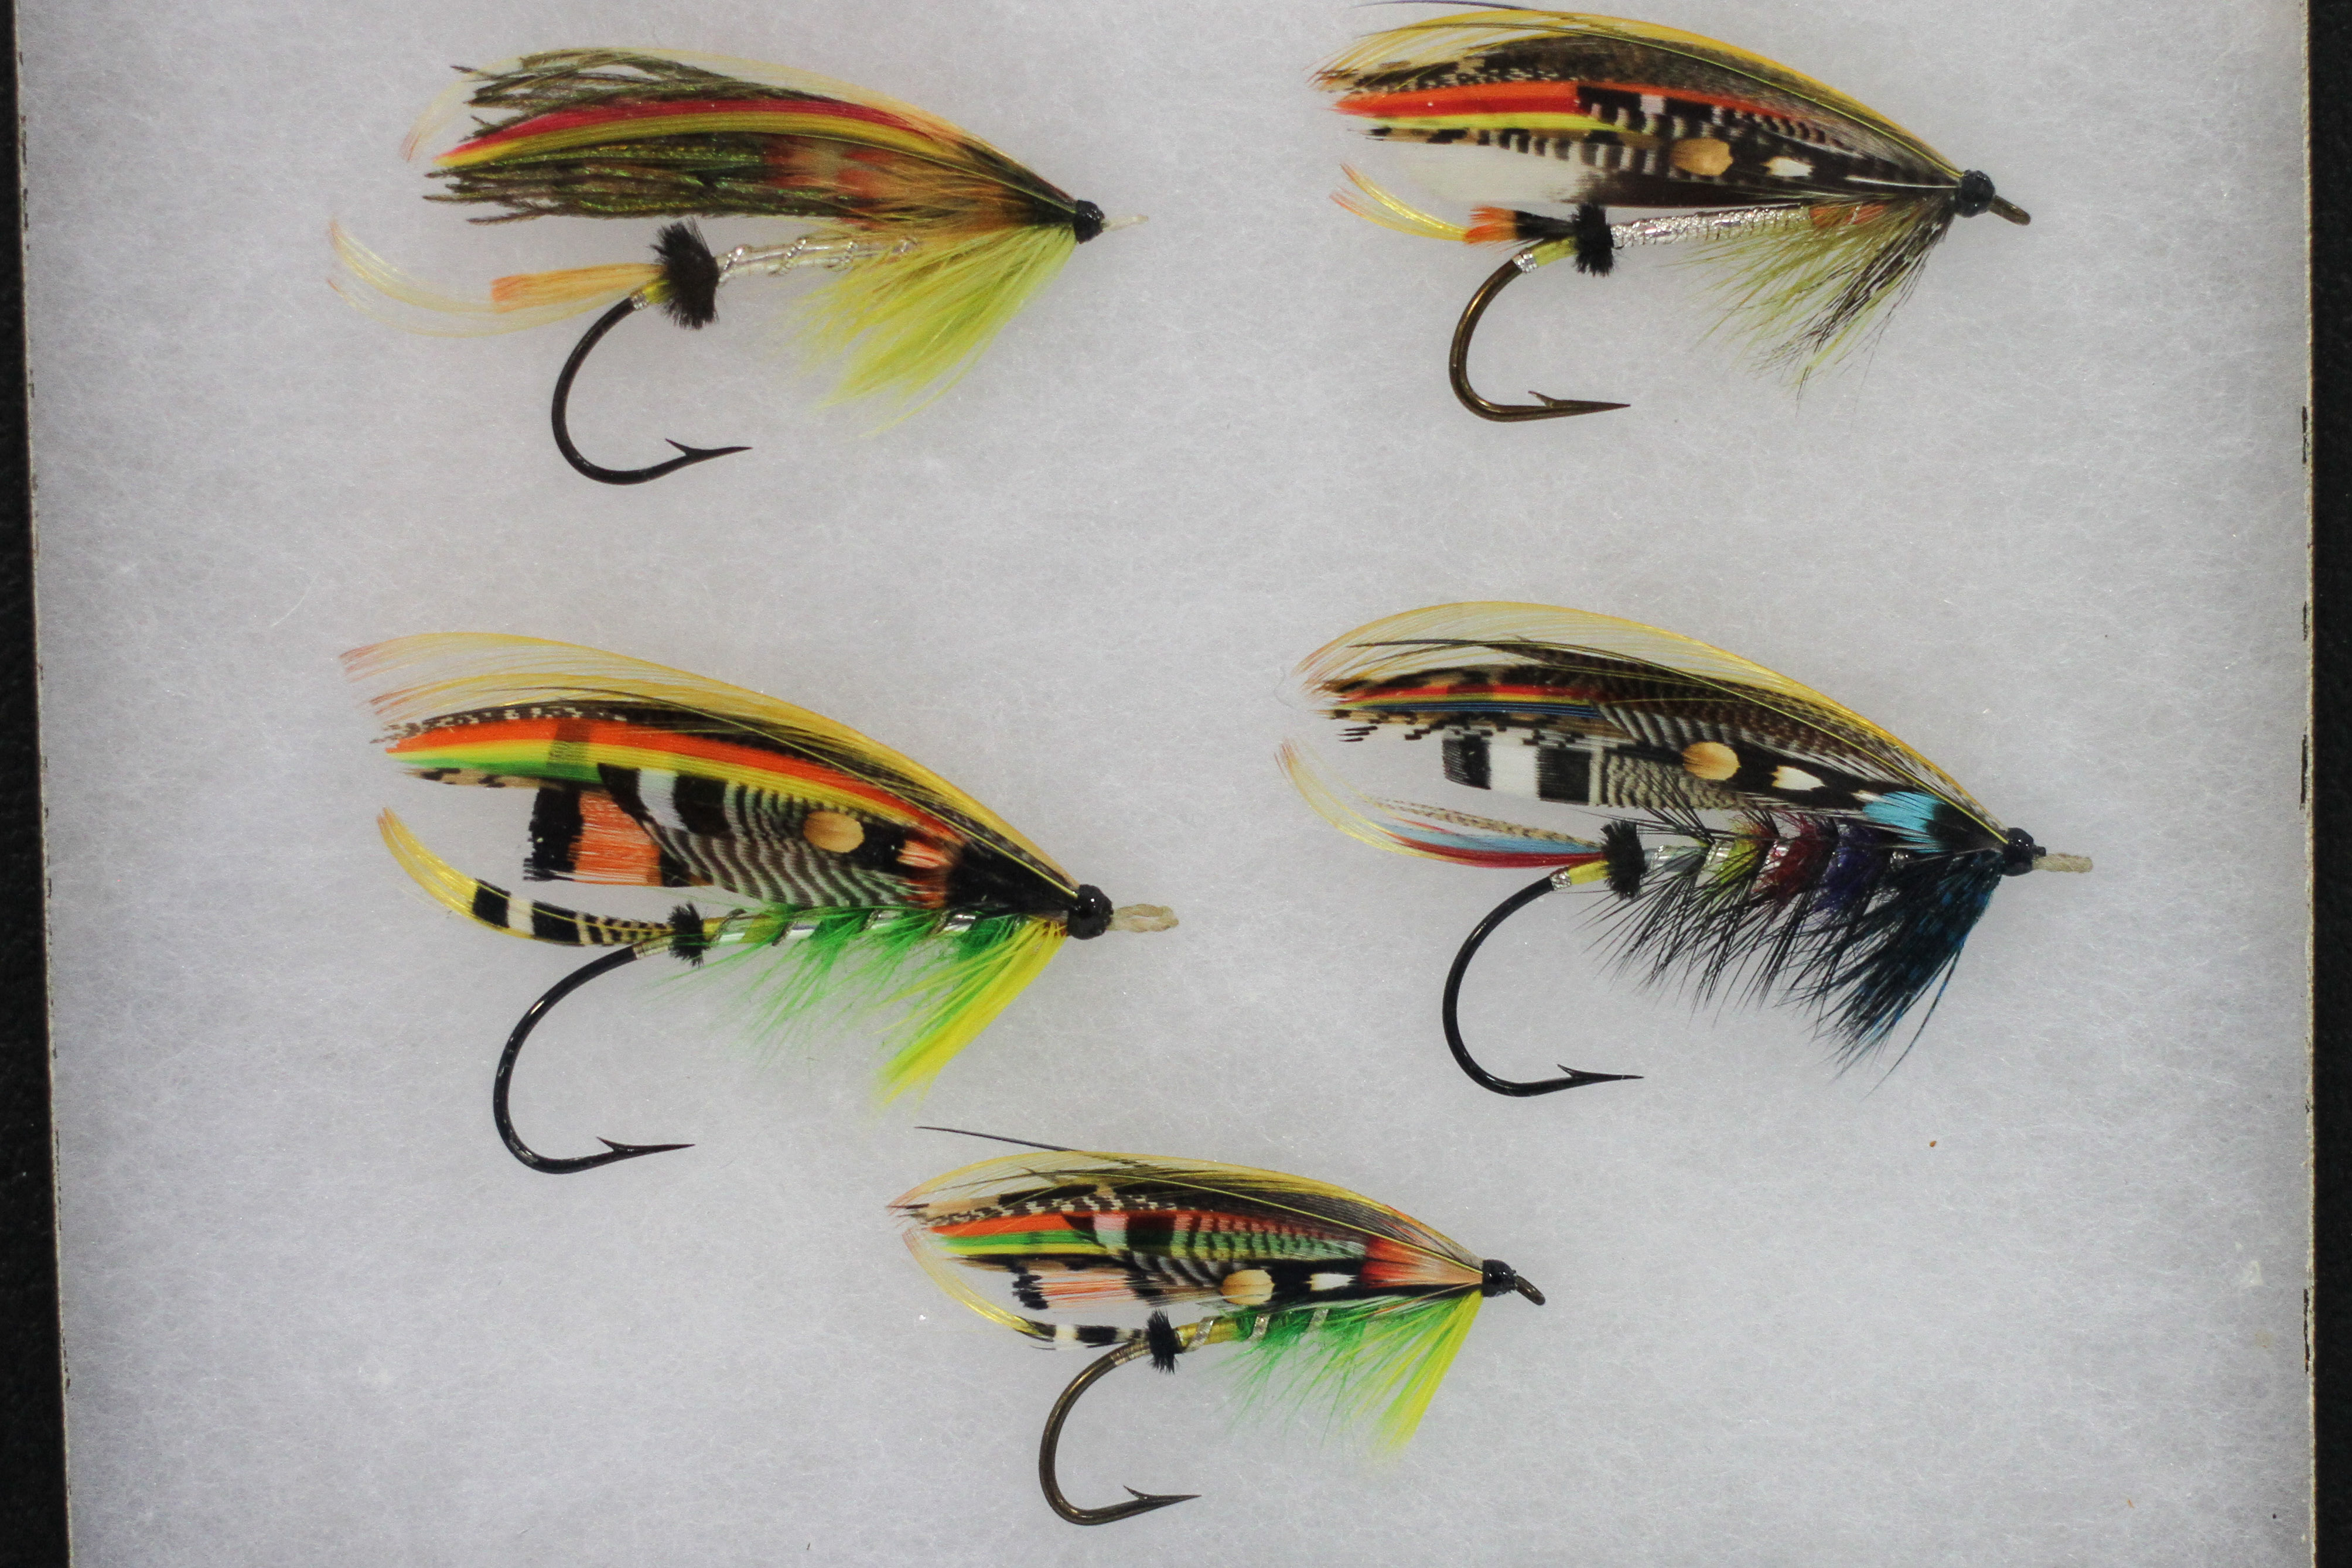 Nw fly tying and fly fishing expo ultimate hook for Fly fishing tying